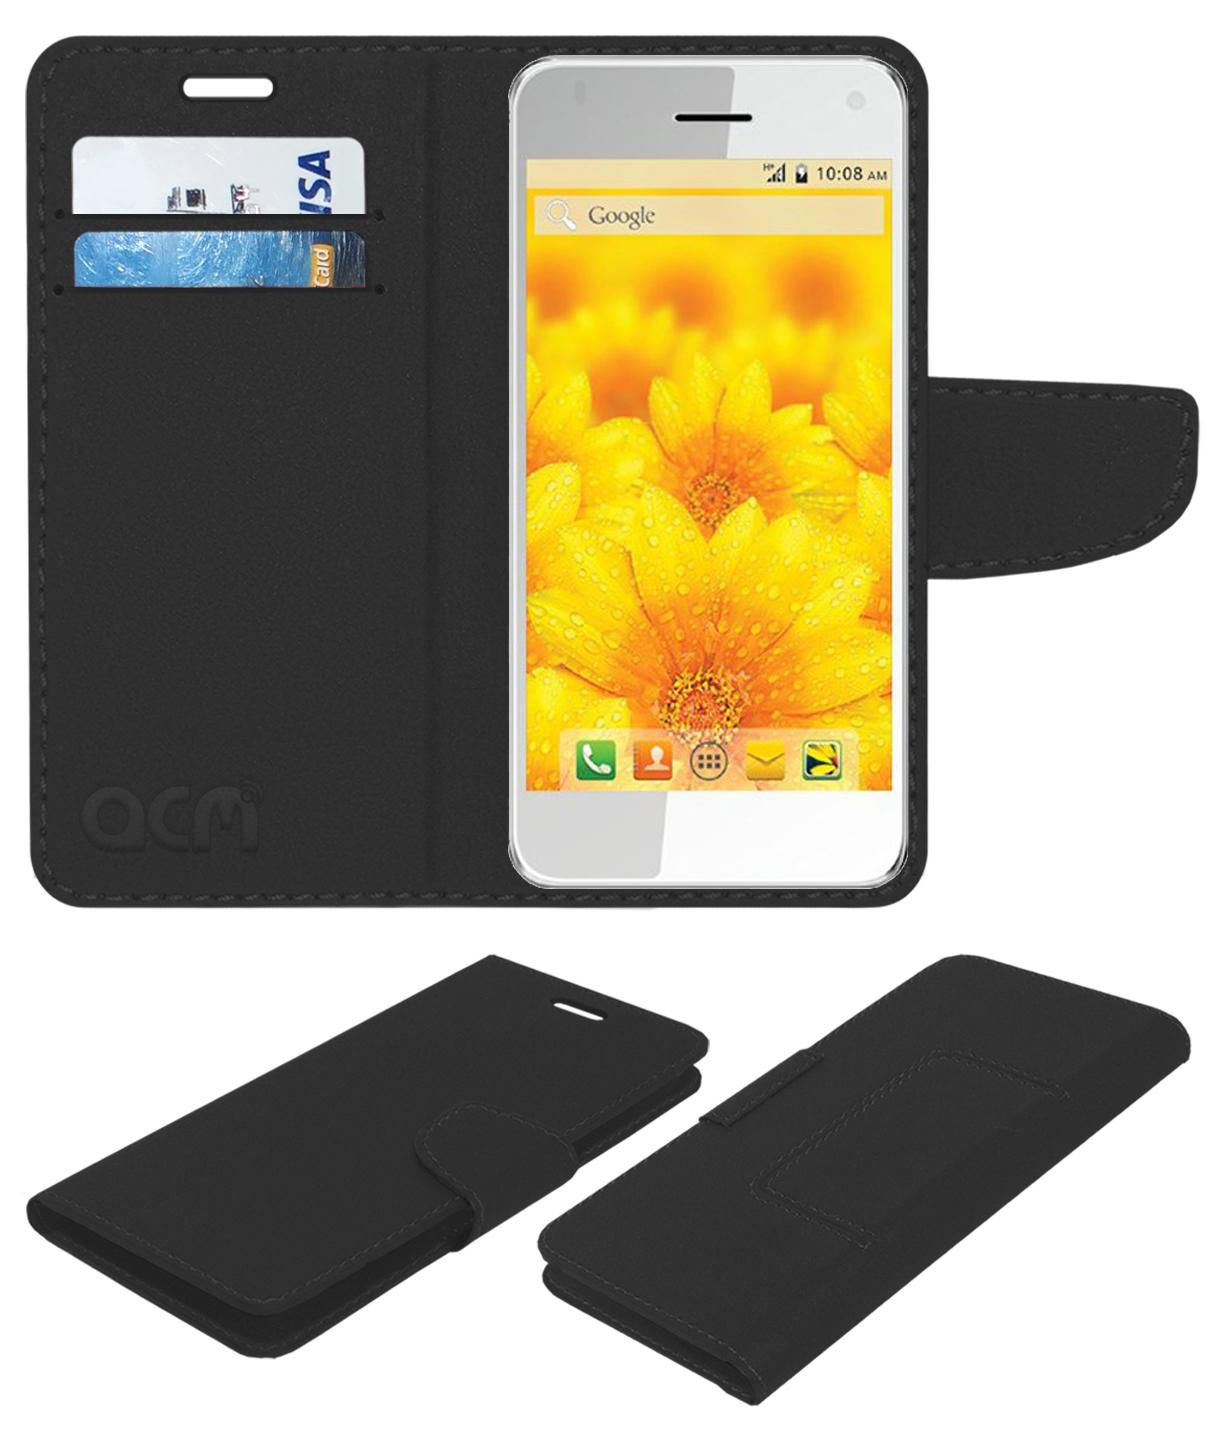 Intex Aqua Style Pro 4.13 Flip Cover by ACM - Black